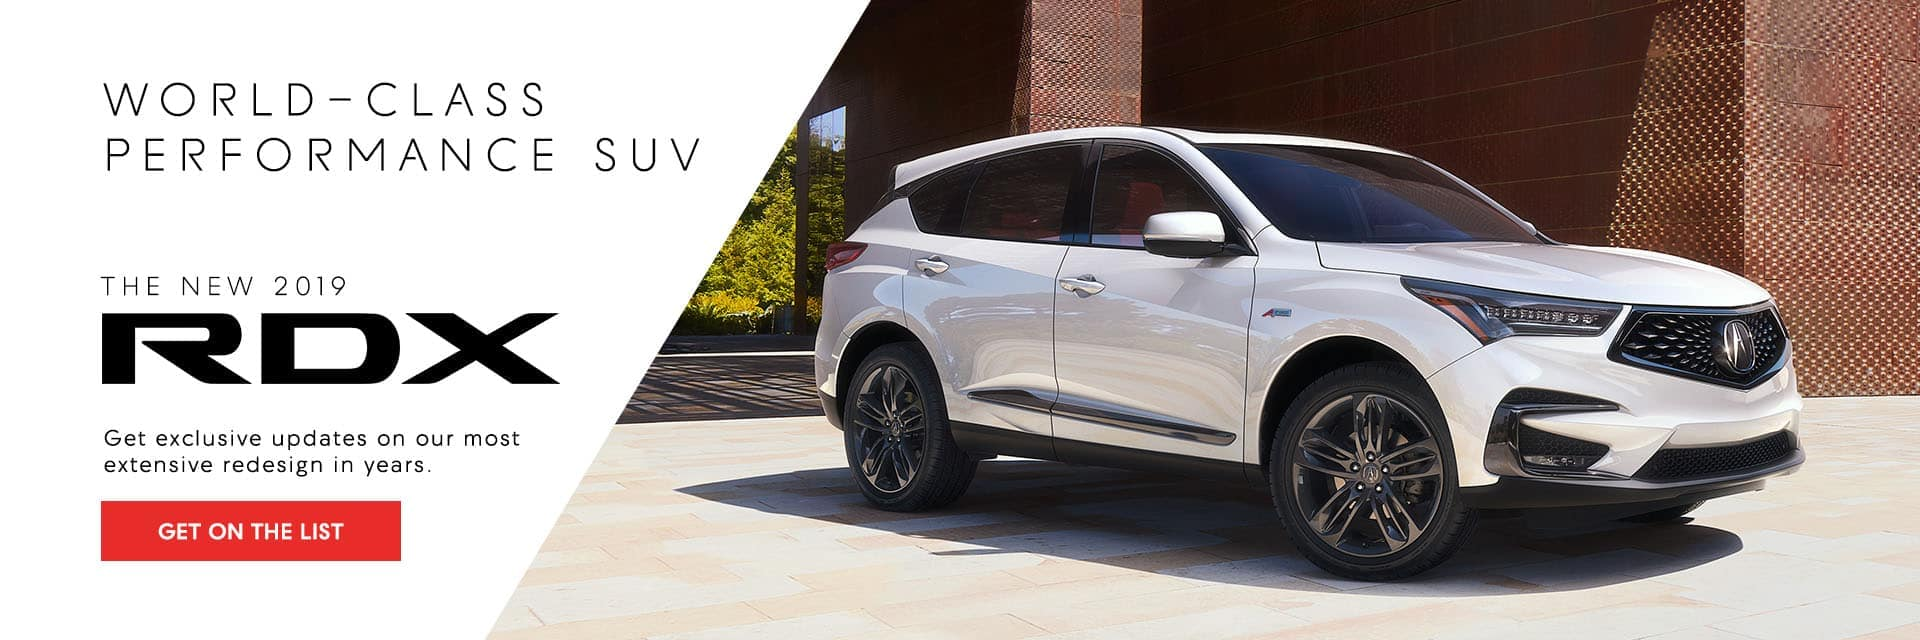 New 2019 RDX - Get on the list Banner